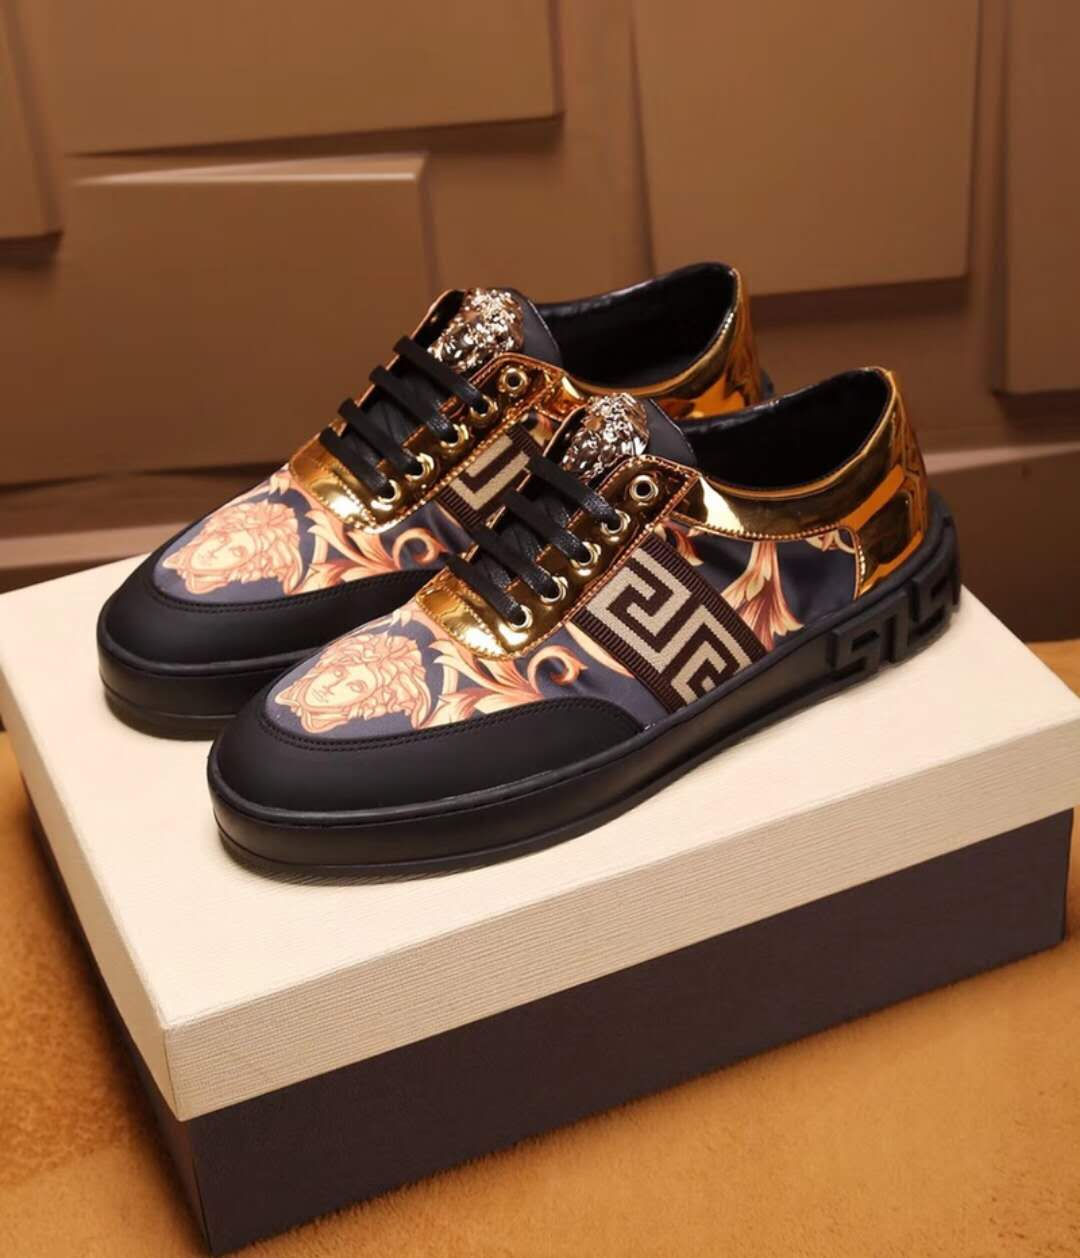 ac9c788e4241 71.00EUR, VERSACE chaussures homme femme,Versace Baskets City,Versace Jeans  chaussure - page4,chaussures